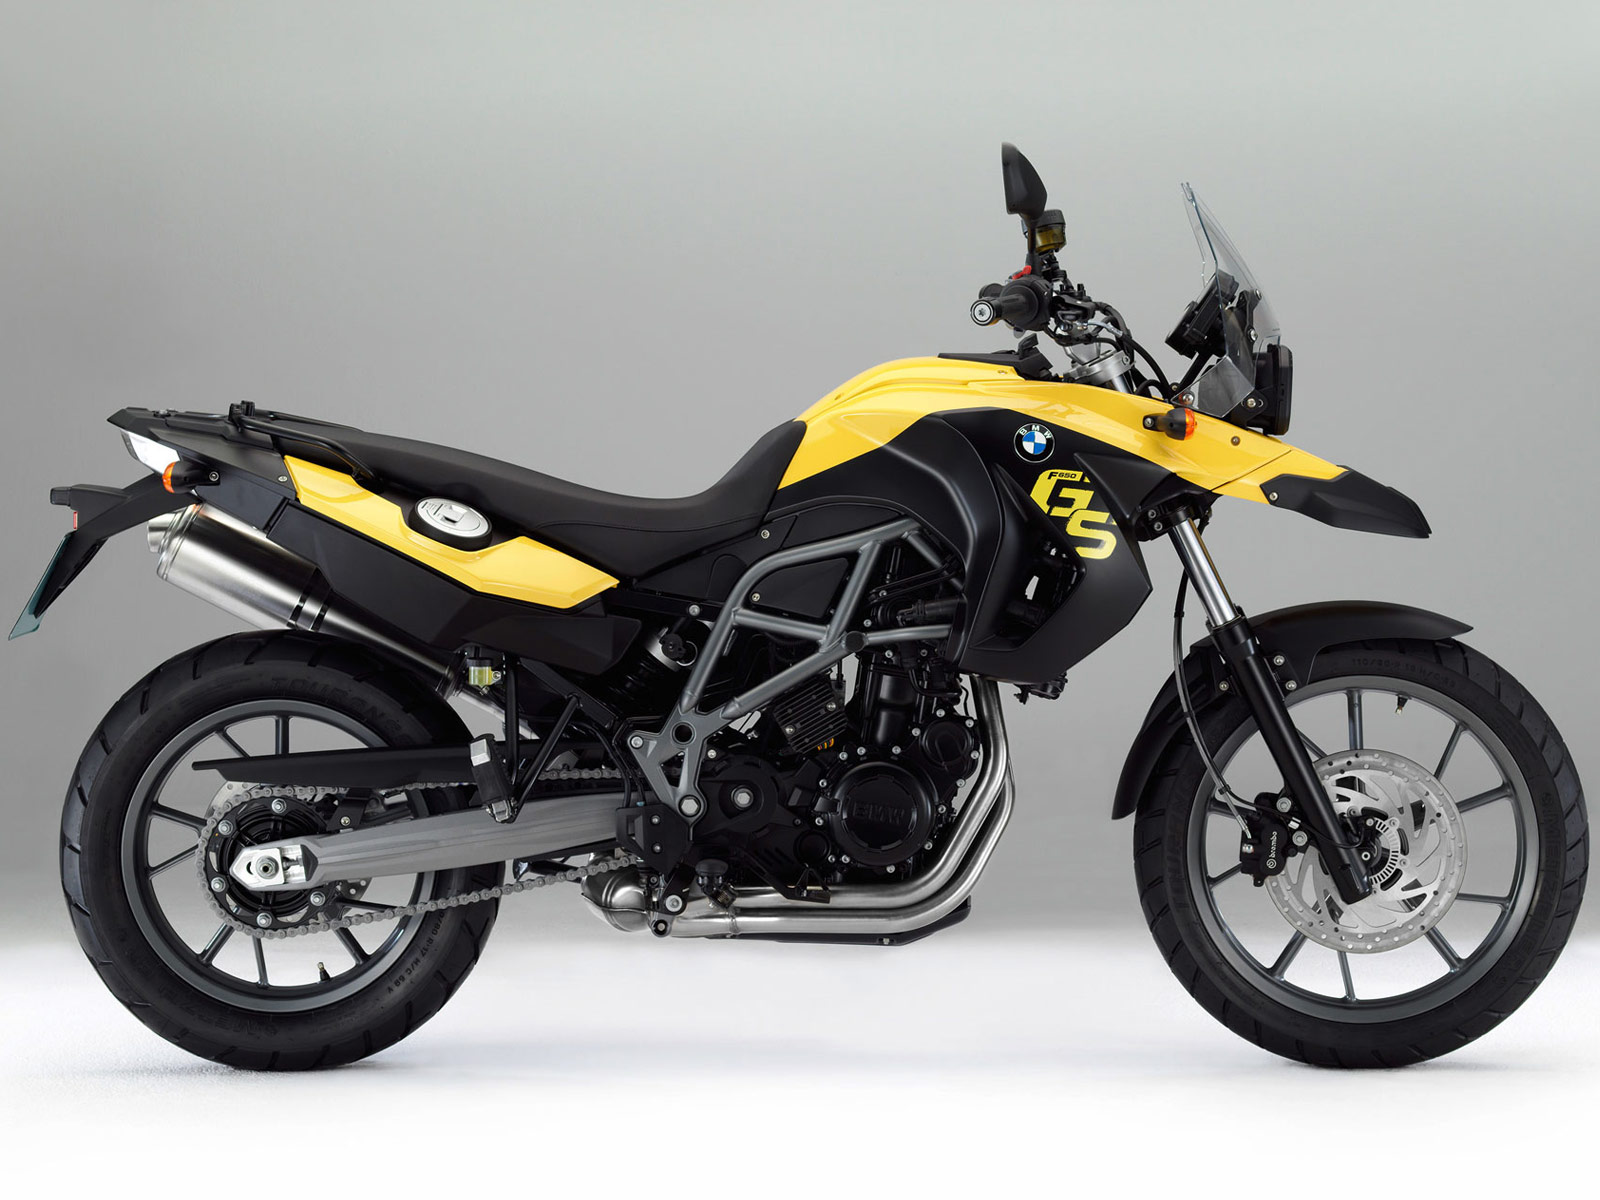 2012 bmw f650gs motorcycle insurance information. Black Bedroom Furniture Sets. Home Design Ideas